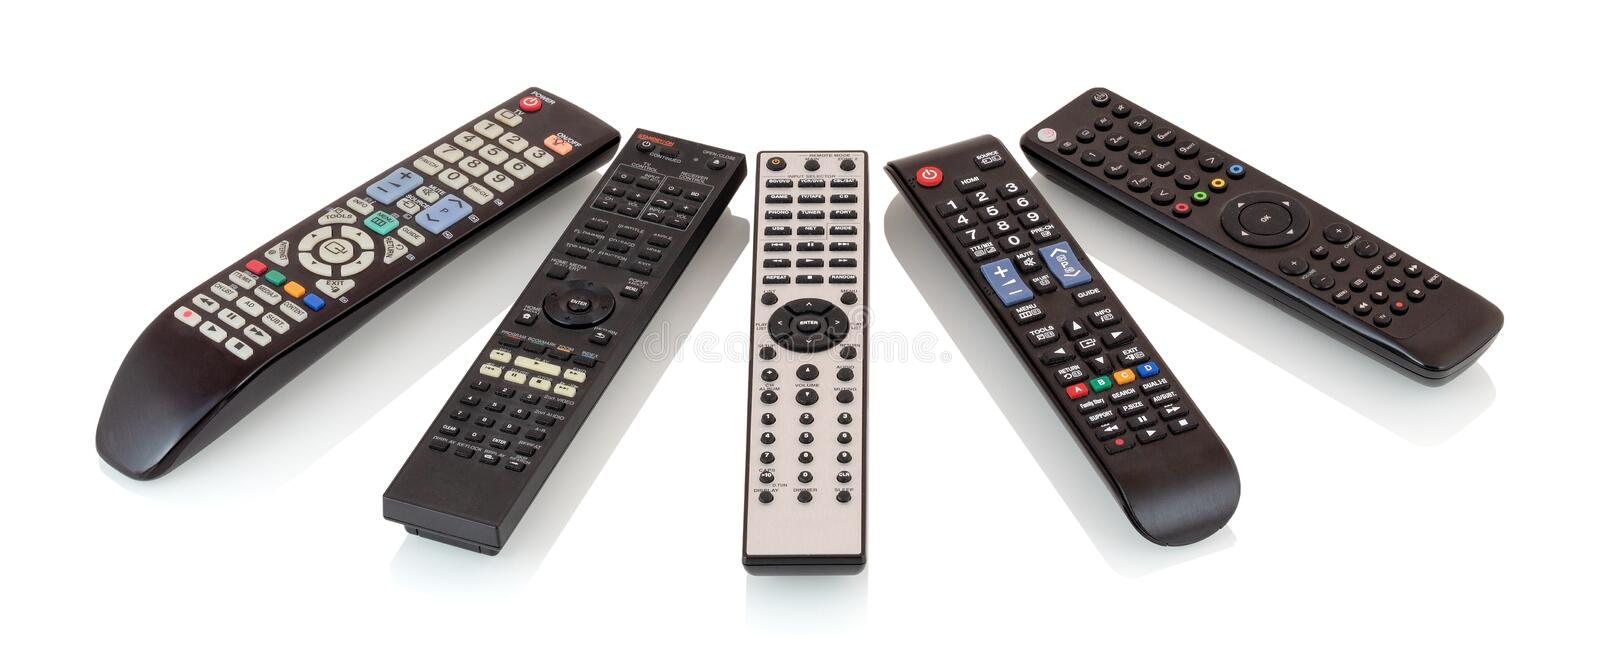 Bunch of remote controls for TV , Blu Ray player, satellite receiver, home cinema amplifier isolated on white background. royalty free stock photography